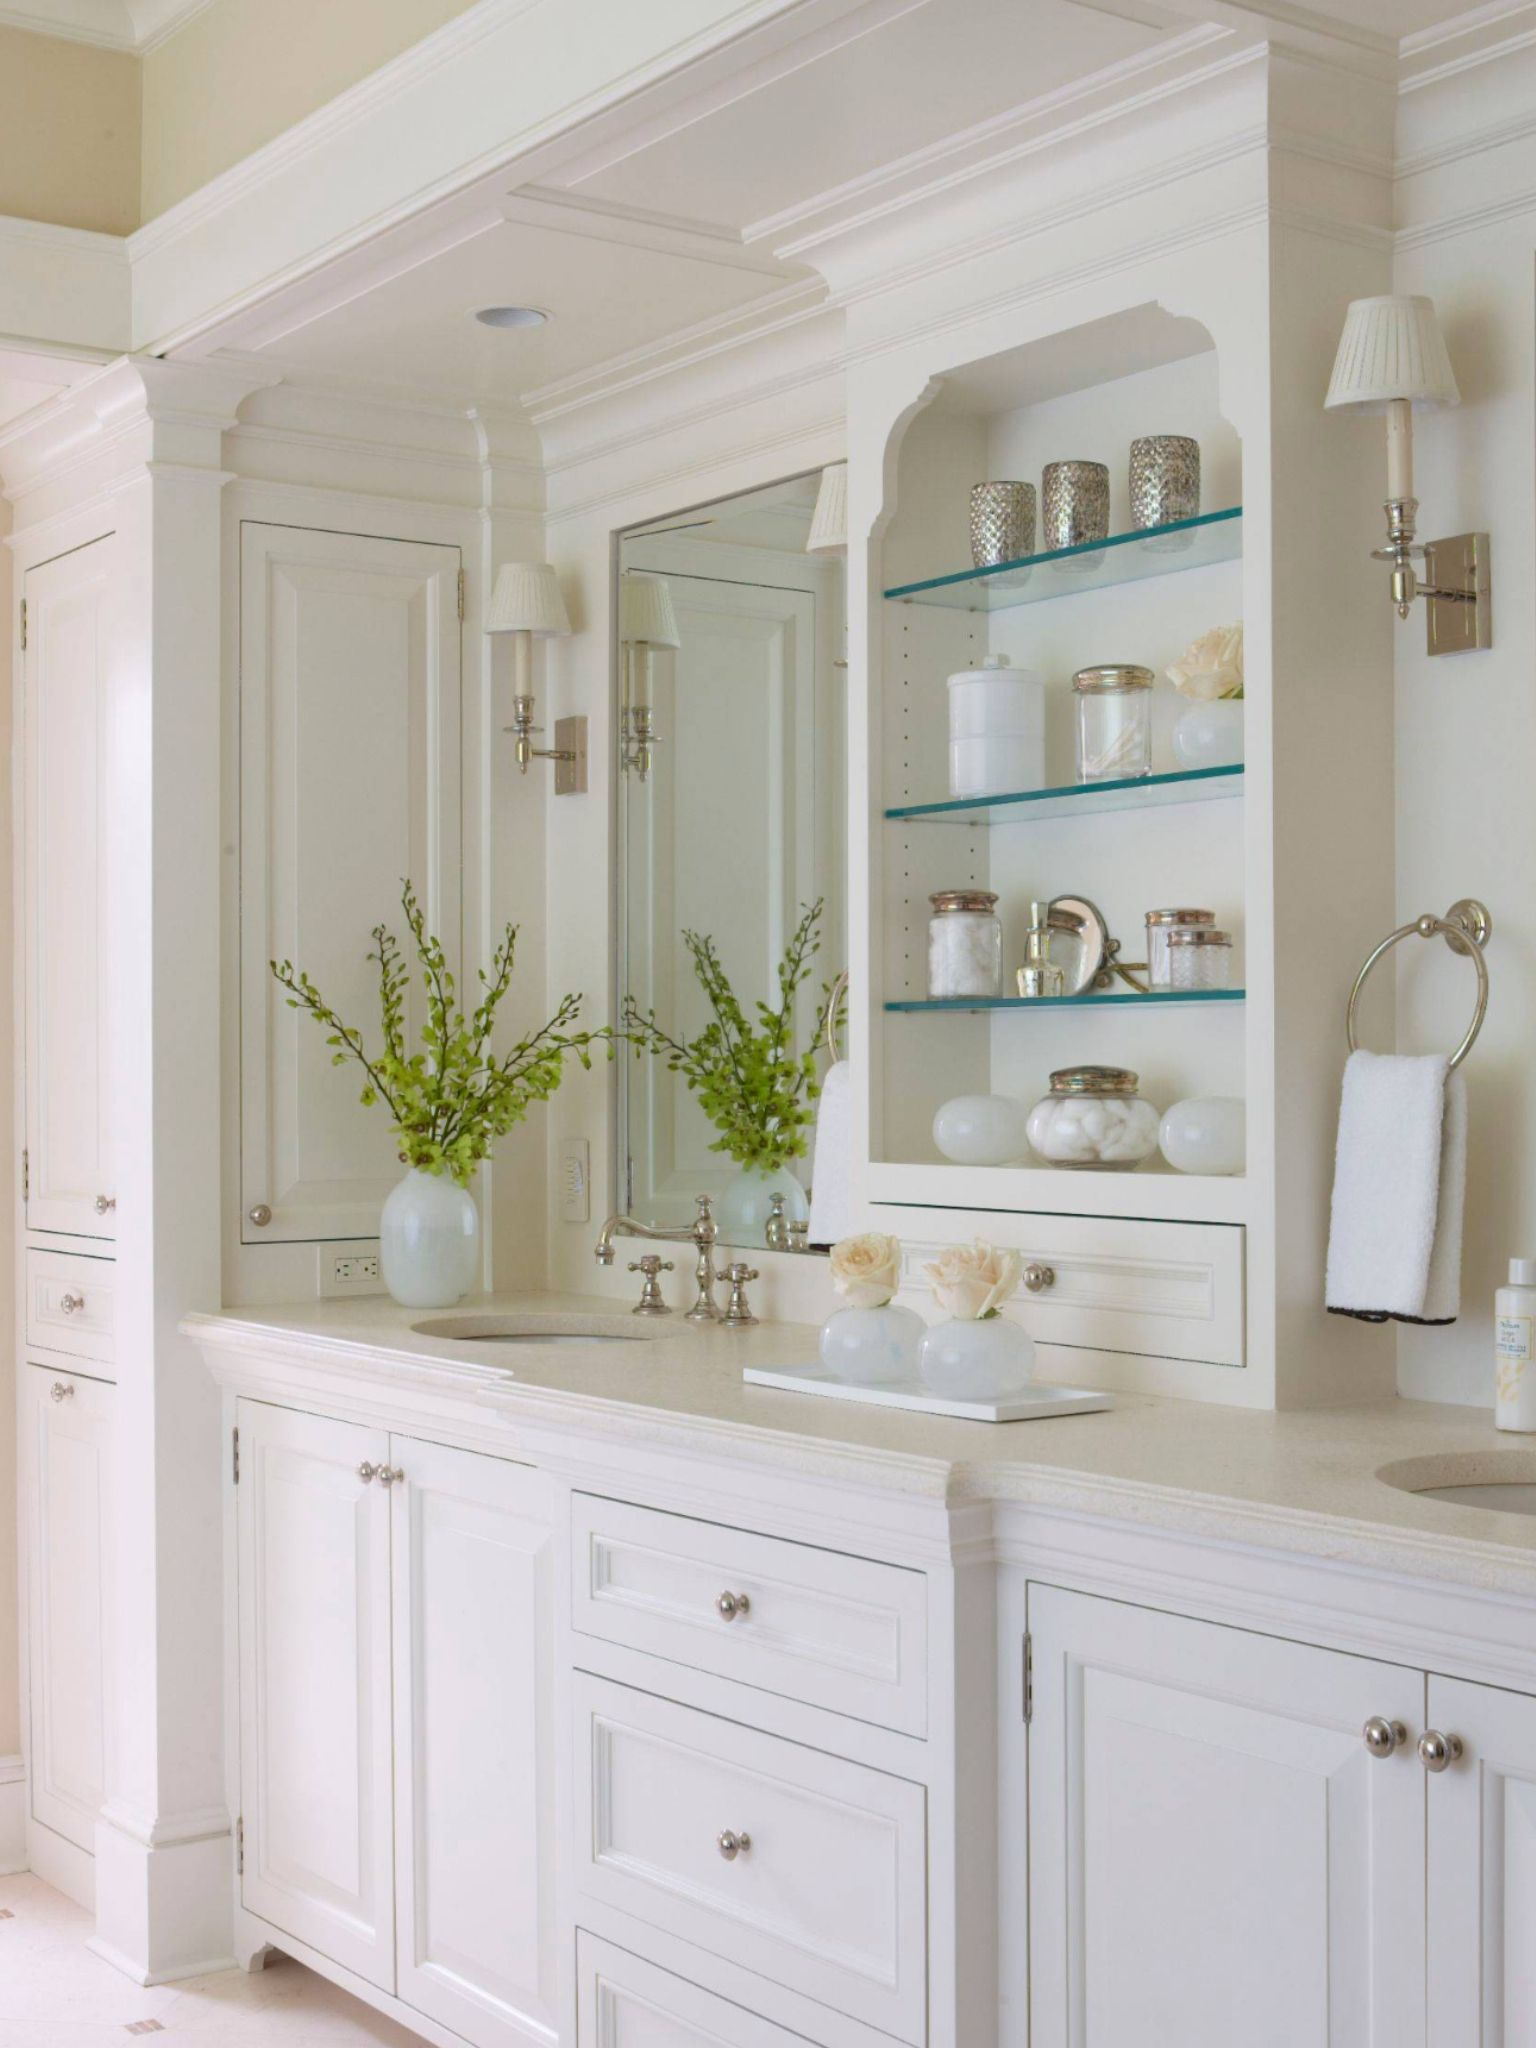 Vanity Cabinets Flush Inset Painted White